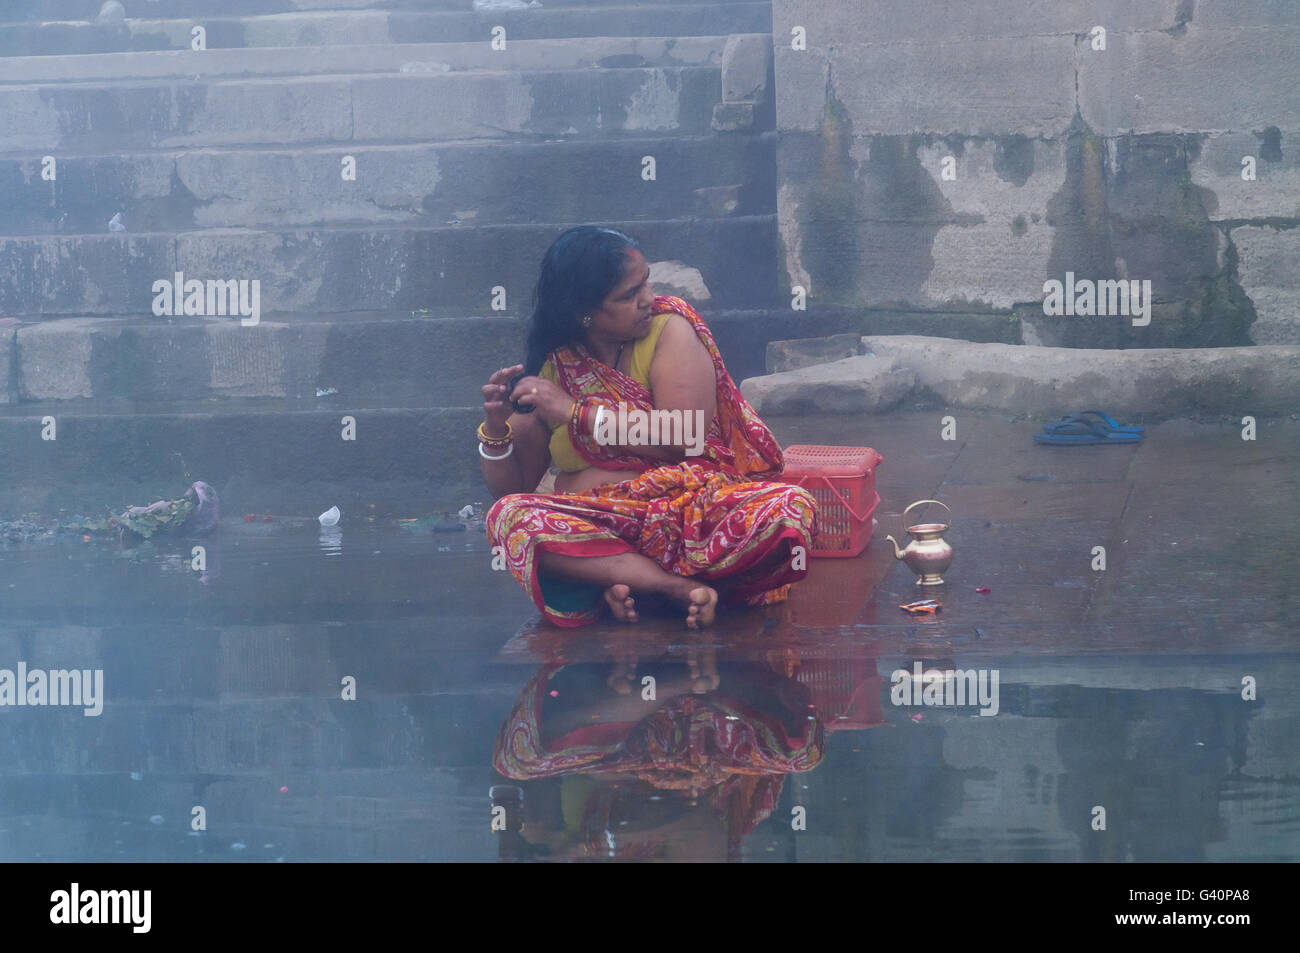 Unidentified Indian woman taking ritual bath in the river Ganges at cold foggy winter morning. Stock Photo